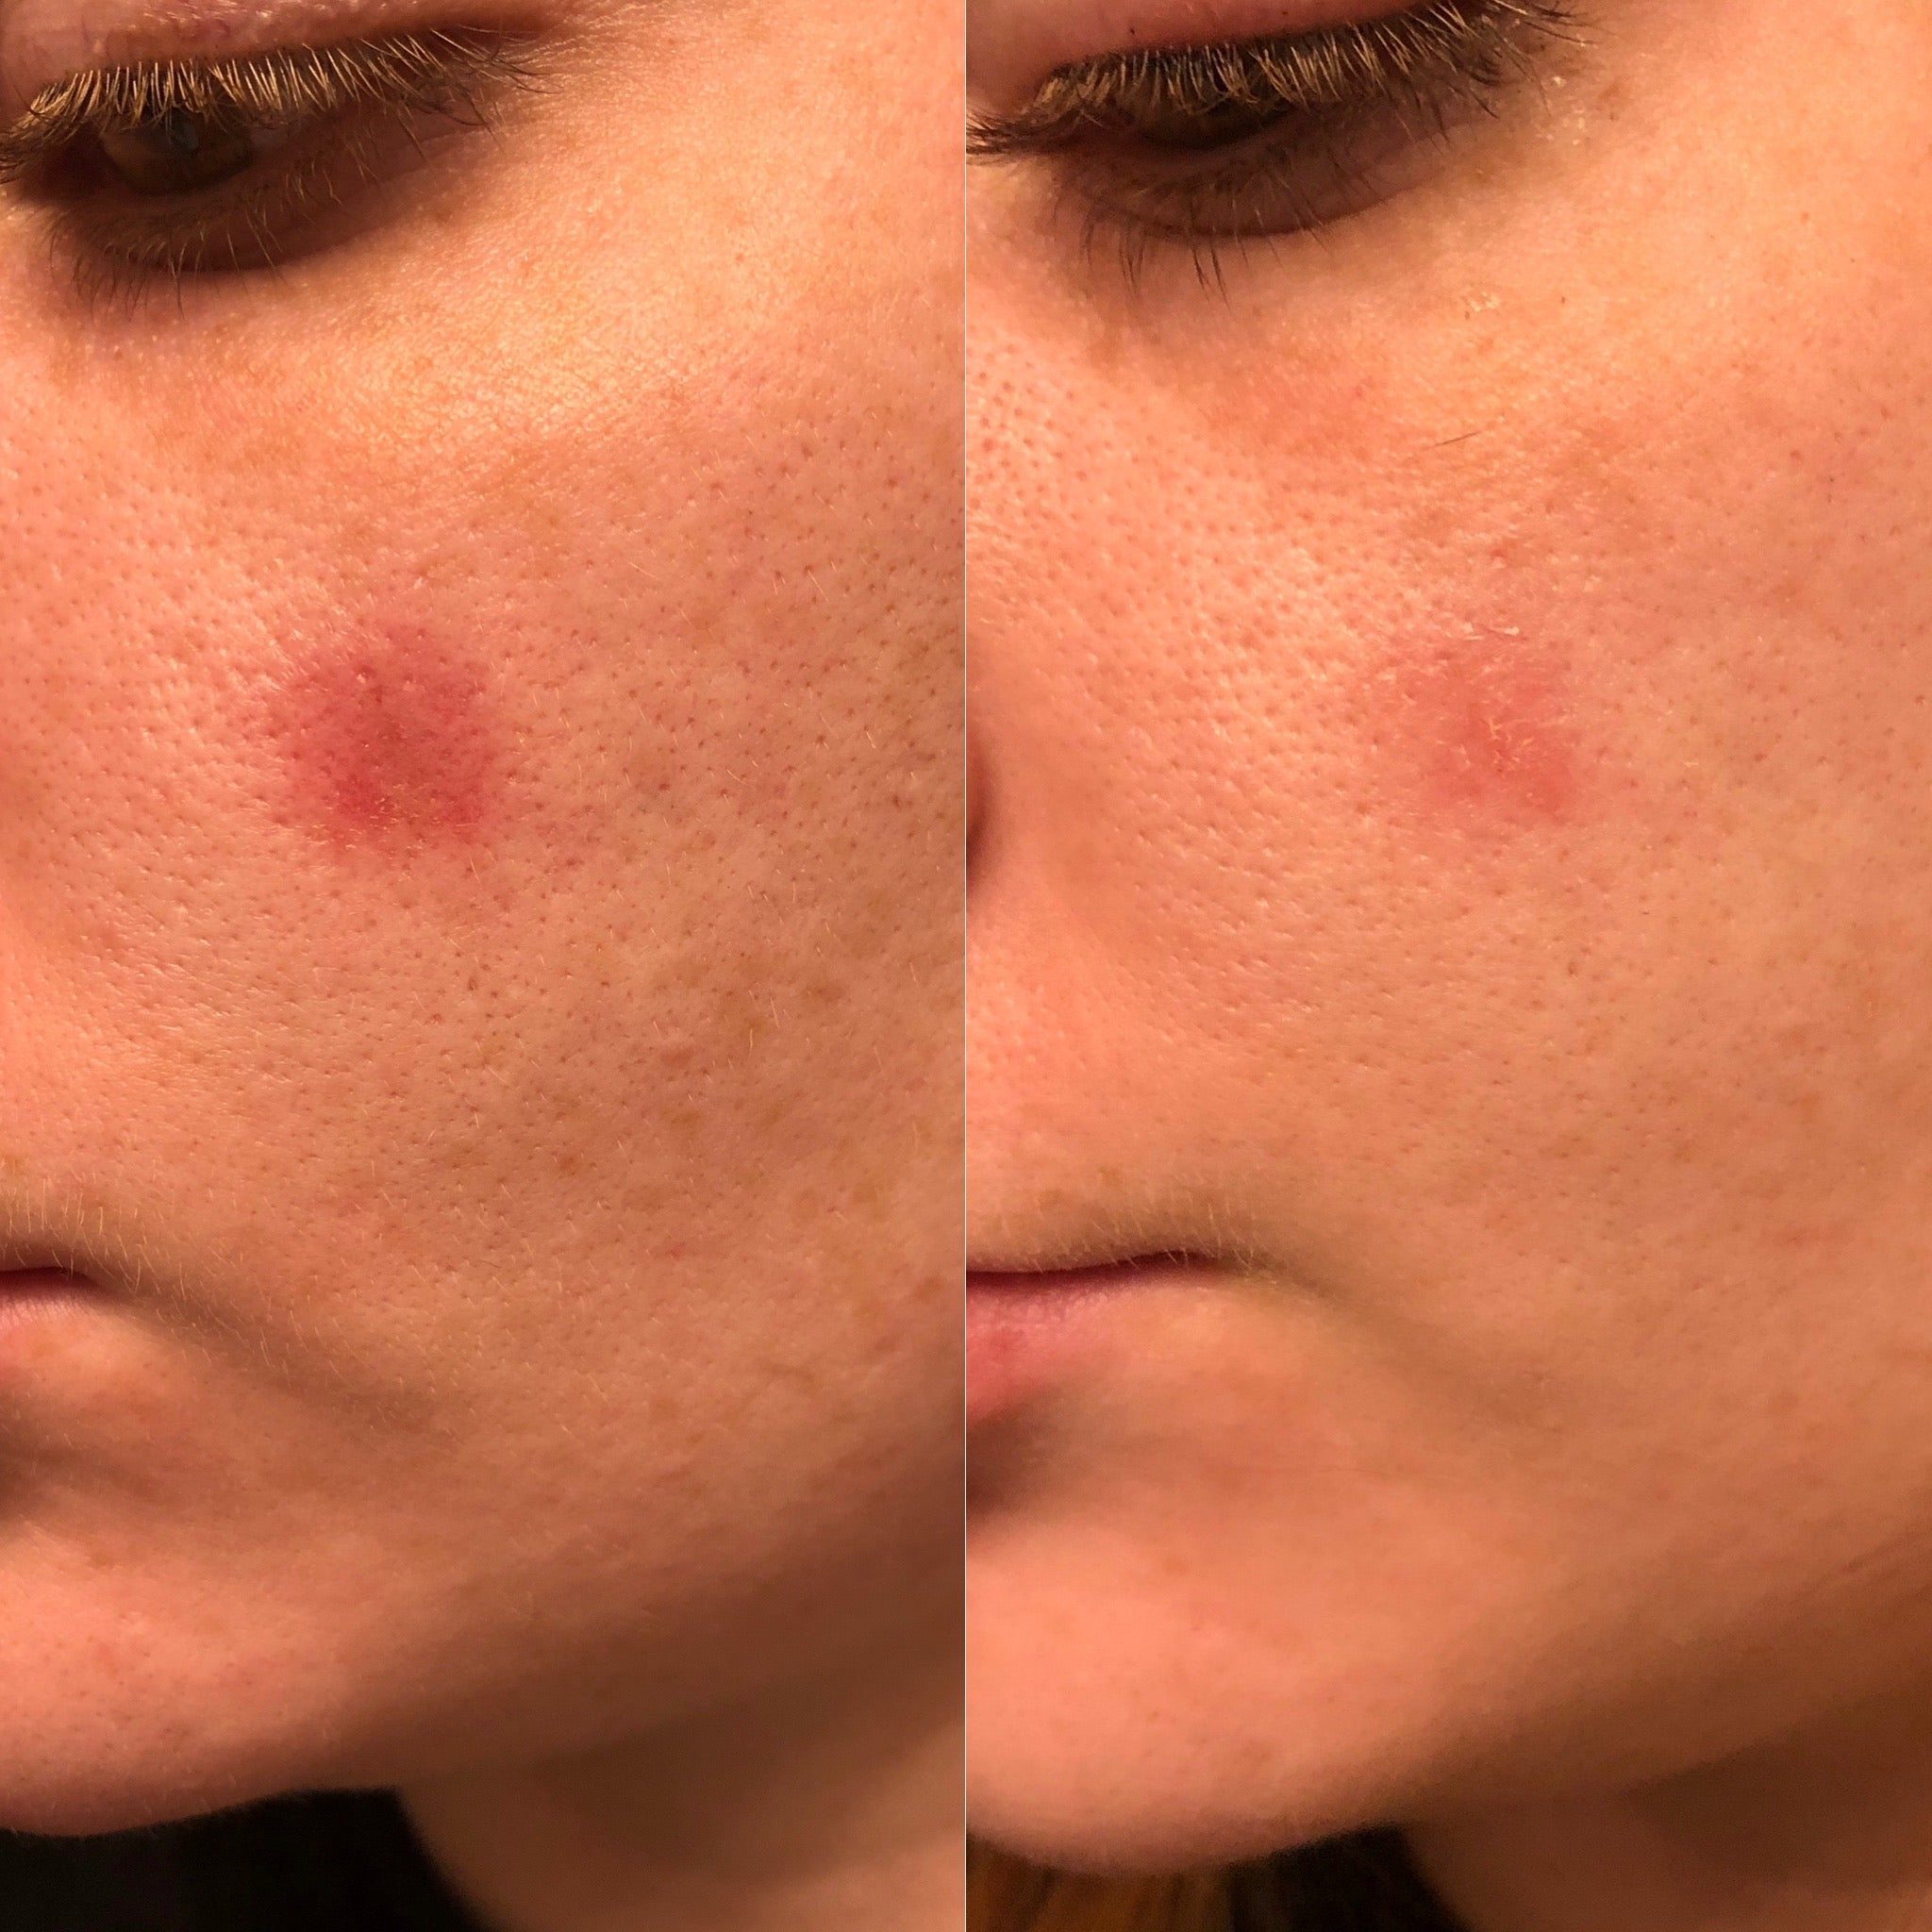 before and after from use of MSM gel, skin wound is healed 3 days later